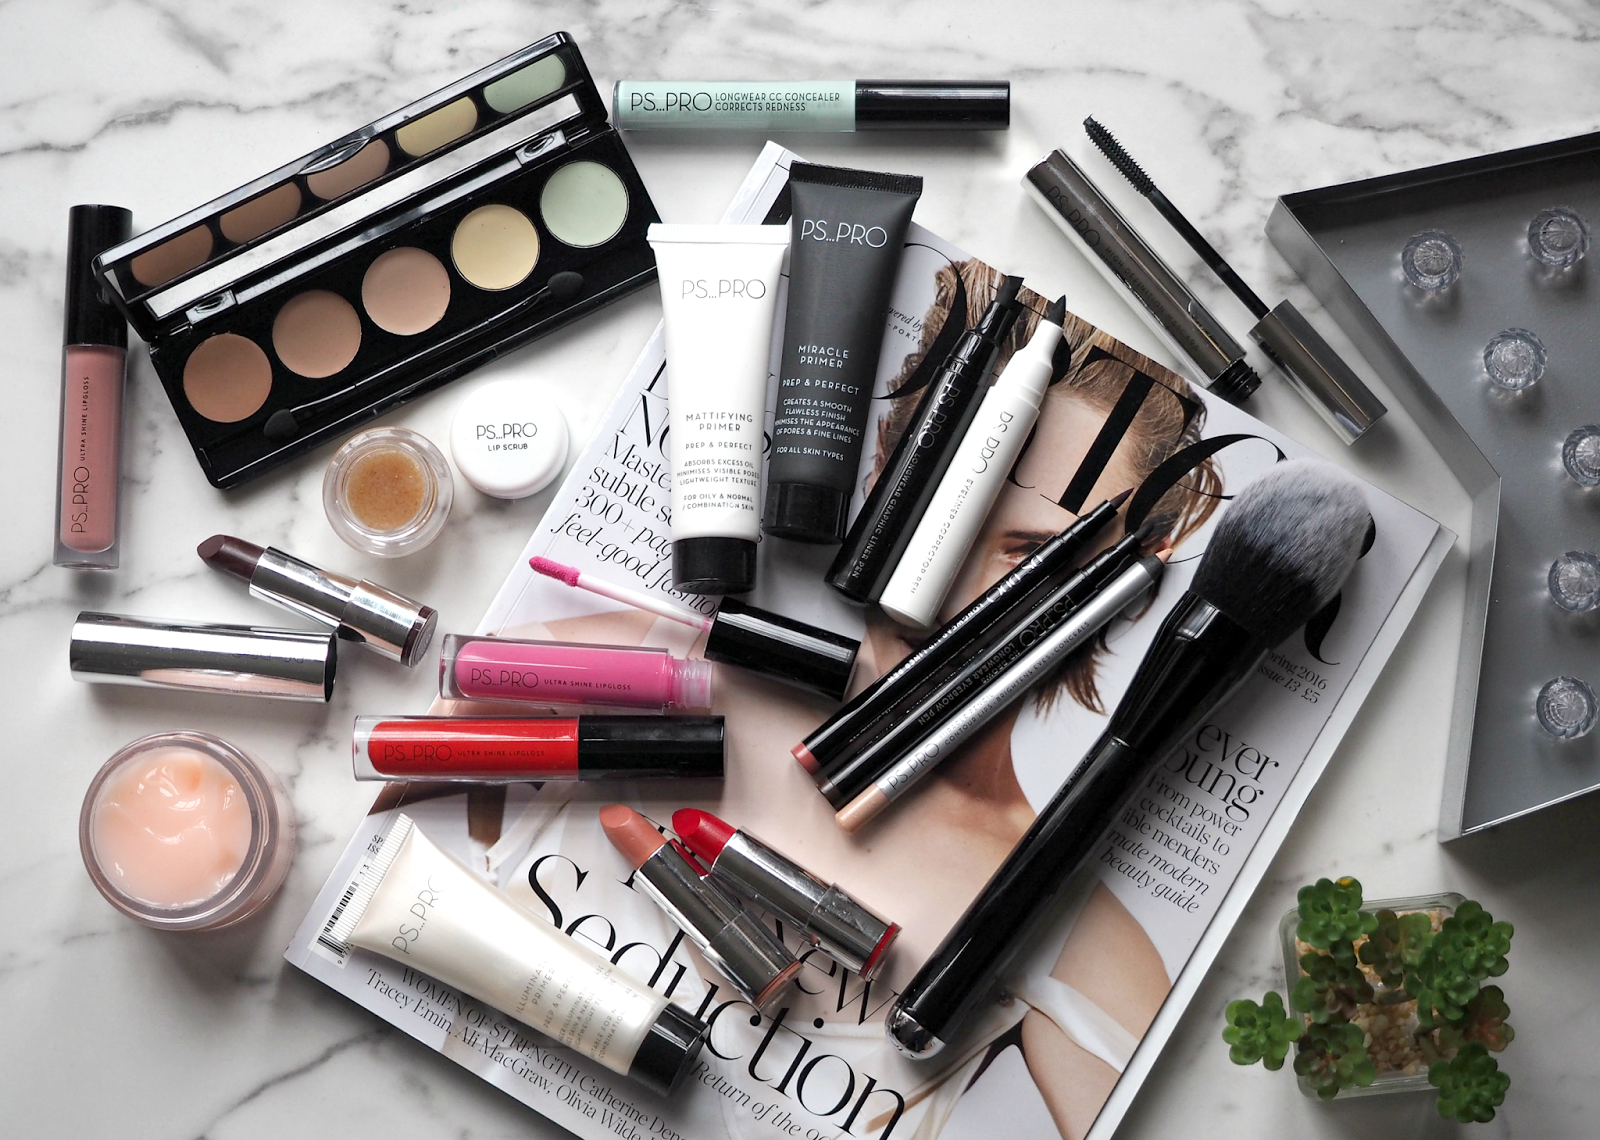 b252bab8dd5 All Of These Makeup Products Cost Less Than A Fiver: New 'PS Pro' From  Primark Is Surprisingly Good For The Price A decade ago the cost of makeup  was really ...